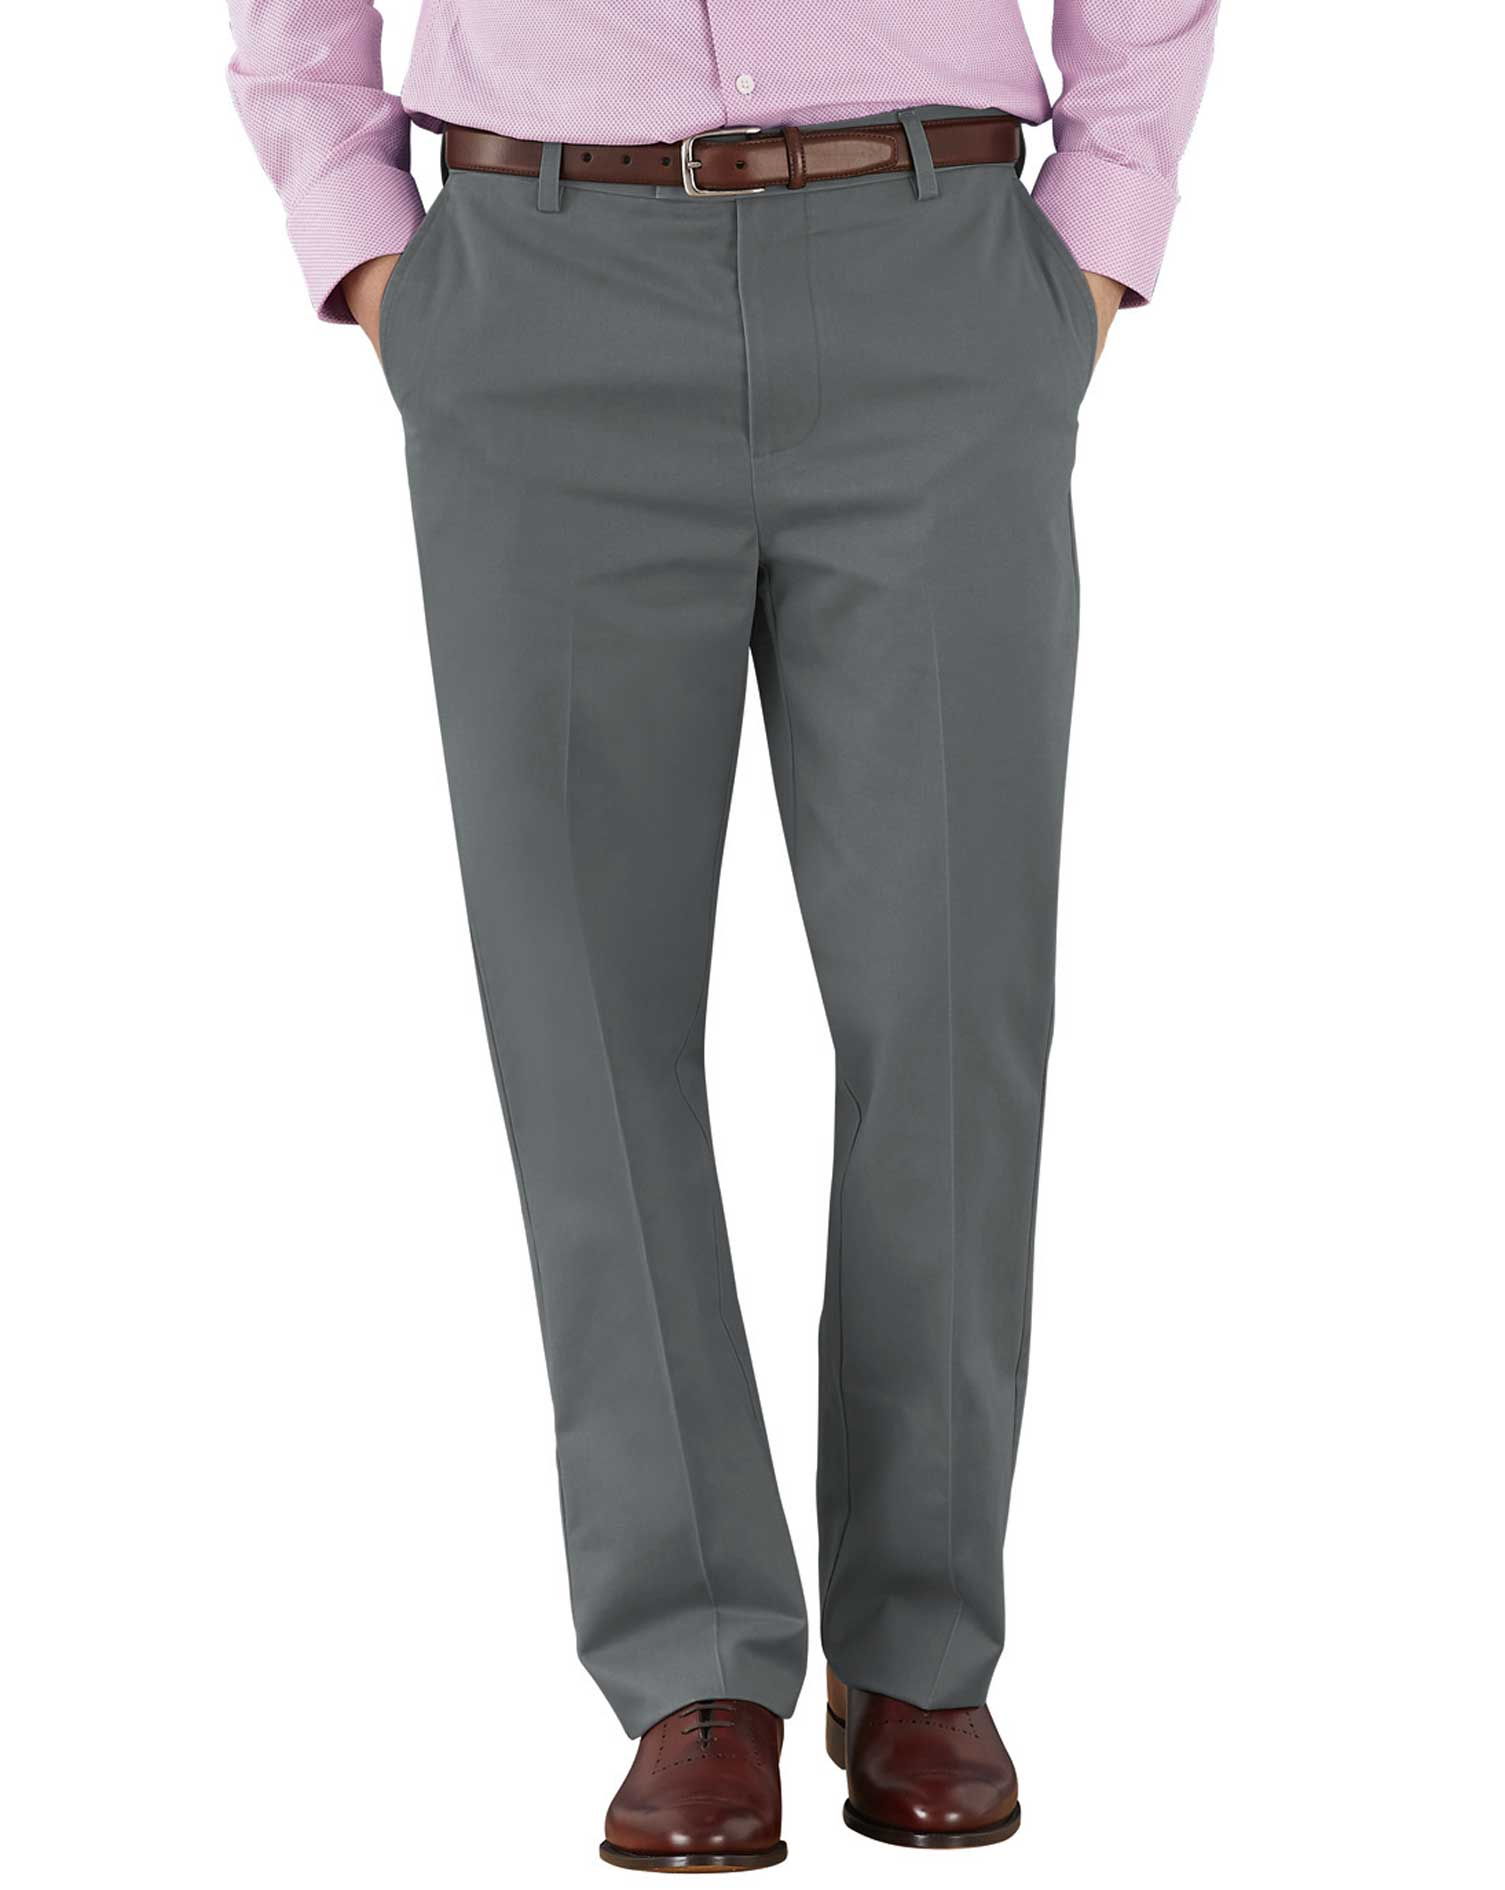 Grey Classic Fit Flat Front Non-Iron Cotton Chino Trousers Size W34 L34 by Charles Tyrwhitt